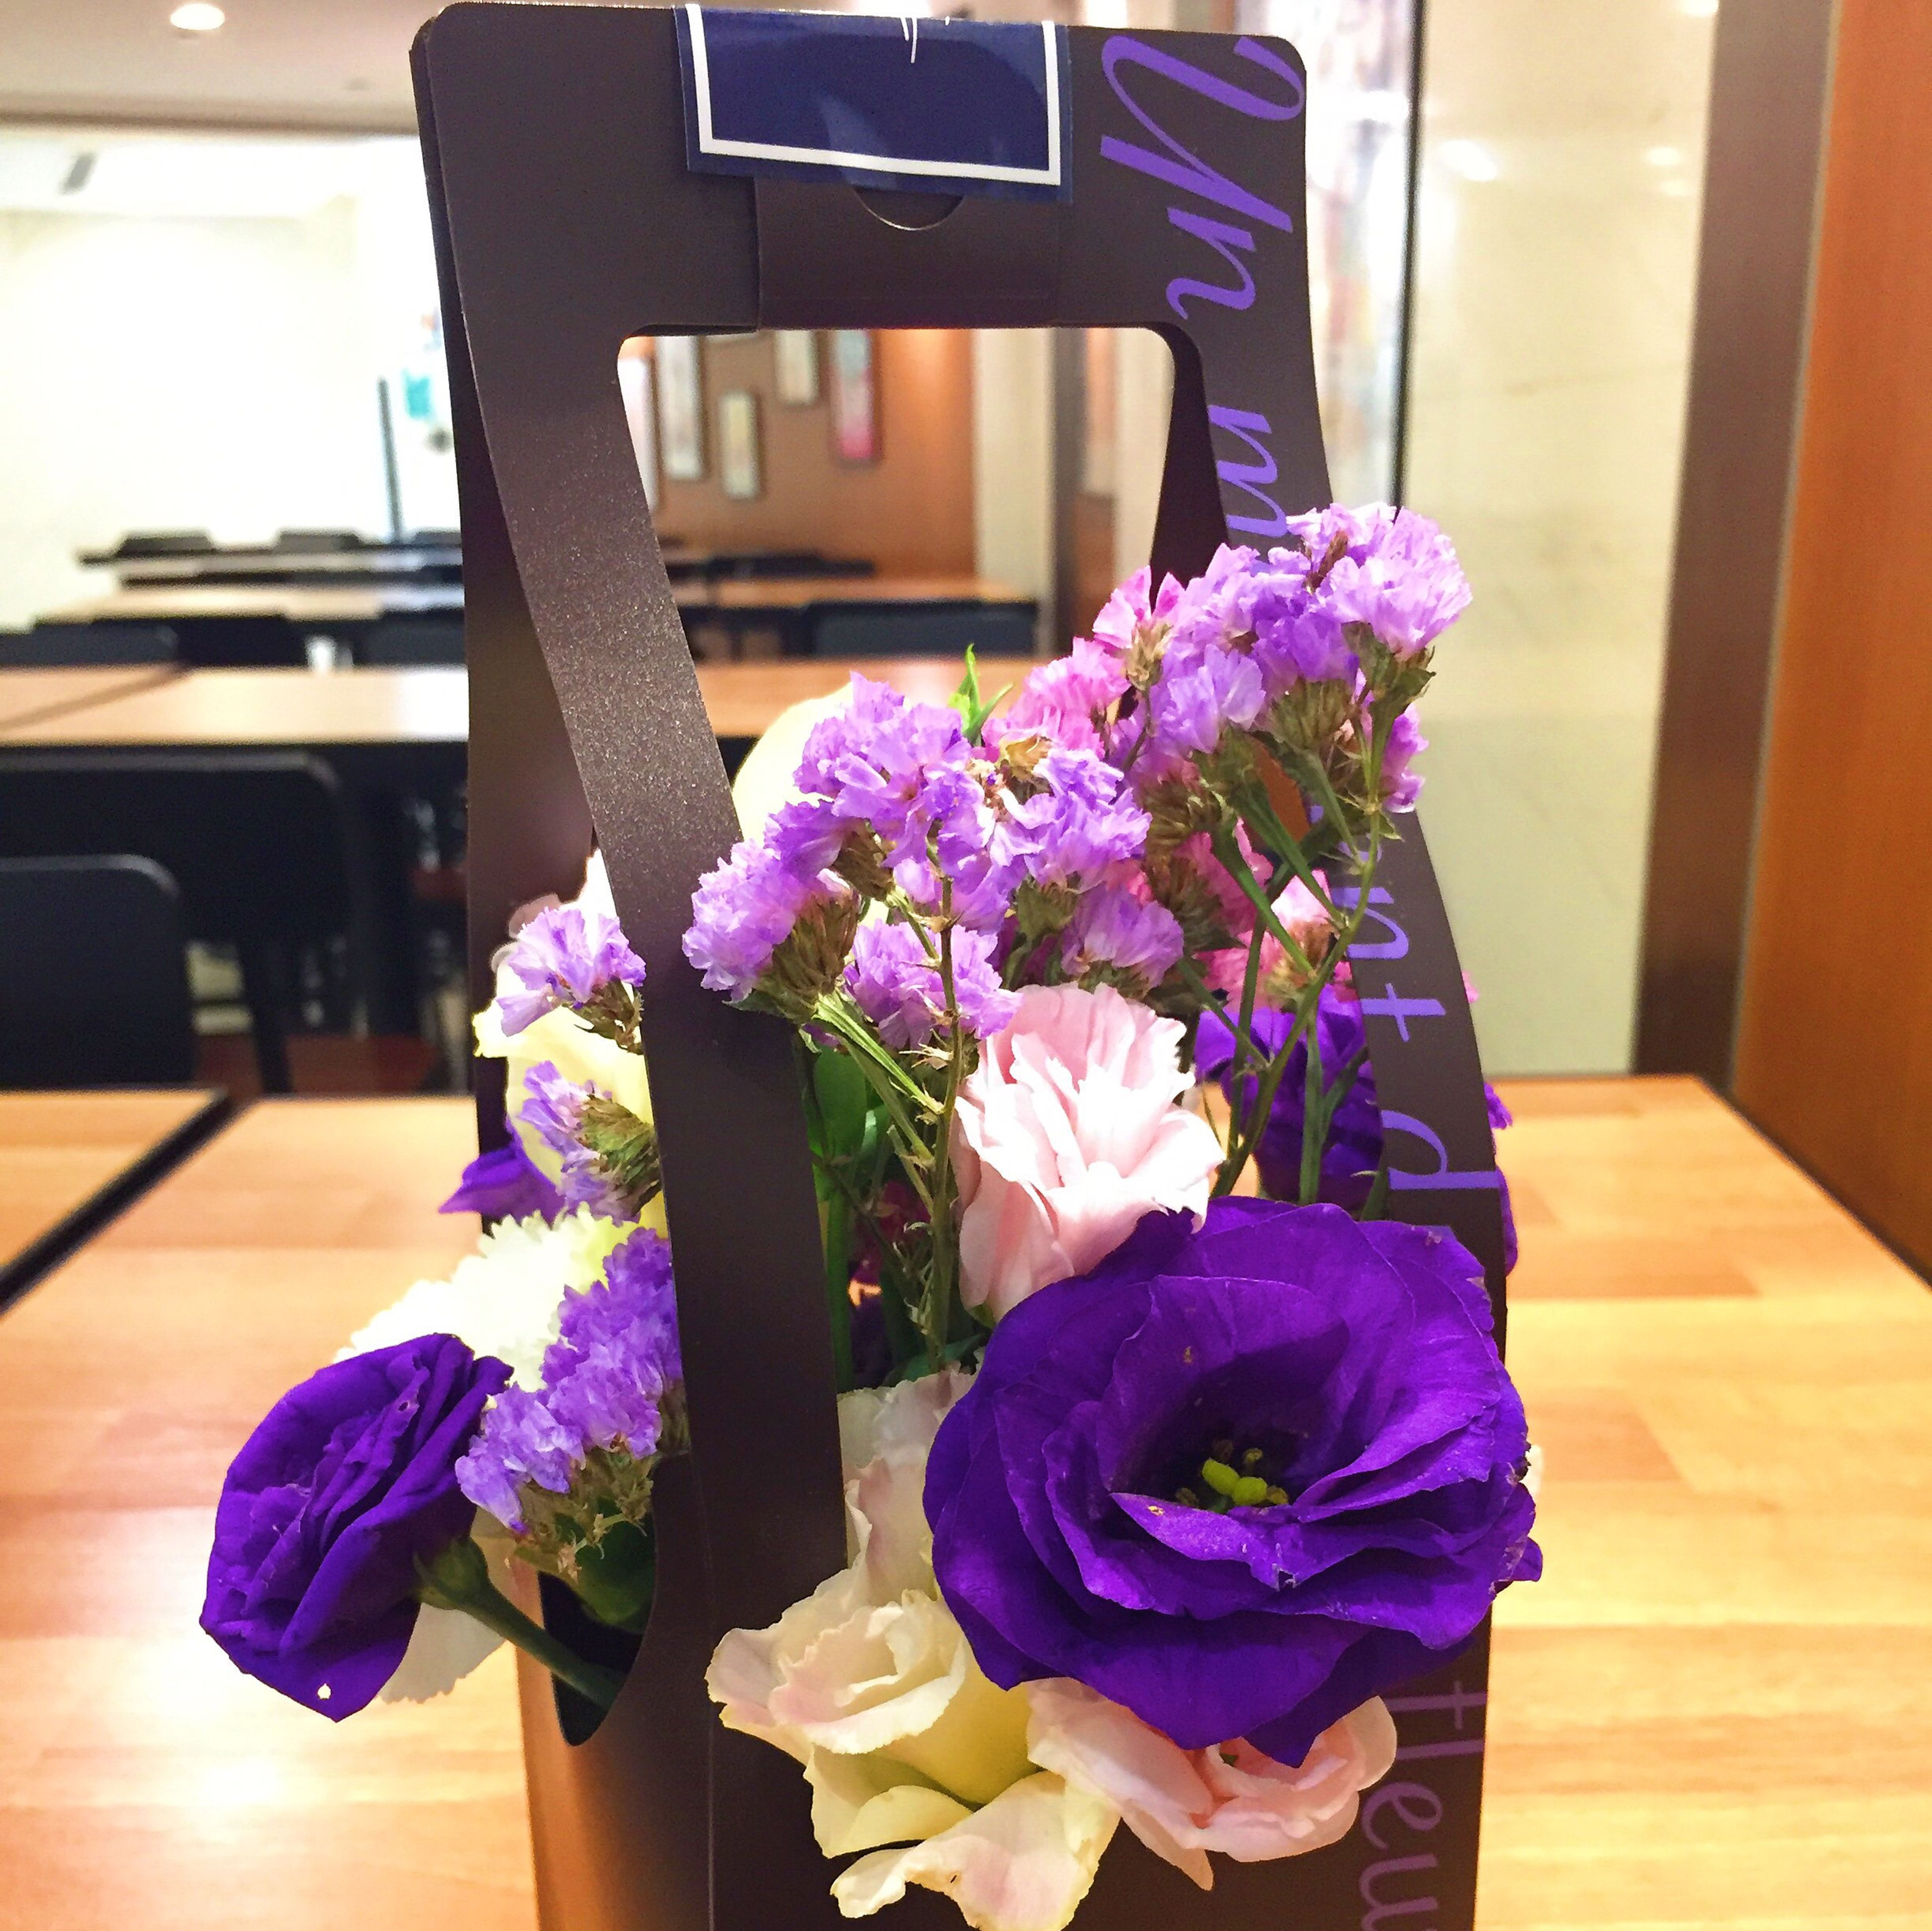 flower, freshness, purple, fragility, petal, indoors, flower head, architecture, built structure, vase, potted plant, table, building exterior, house, window, bunch of flowers, focus on foreground, day, blooming, home interior